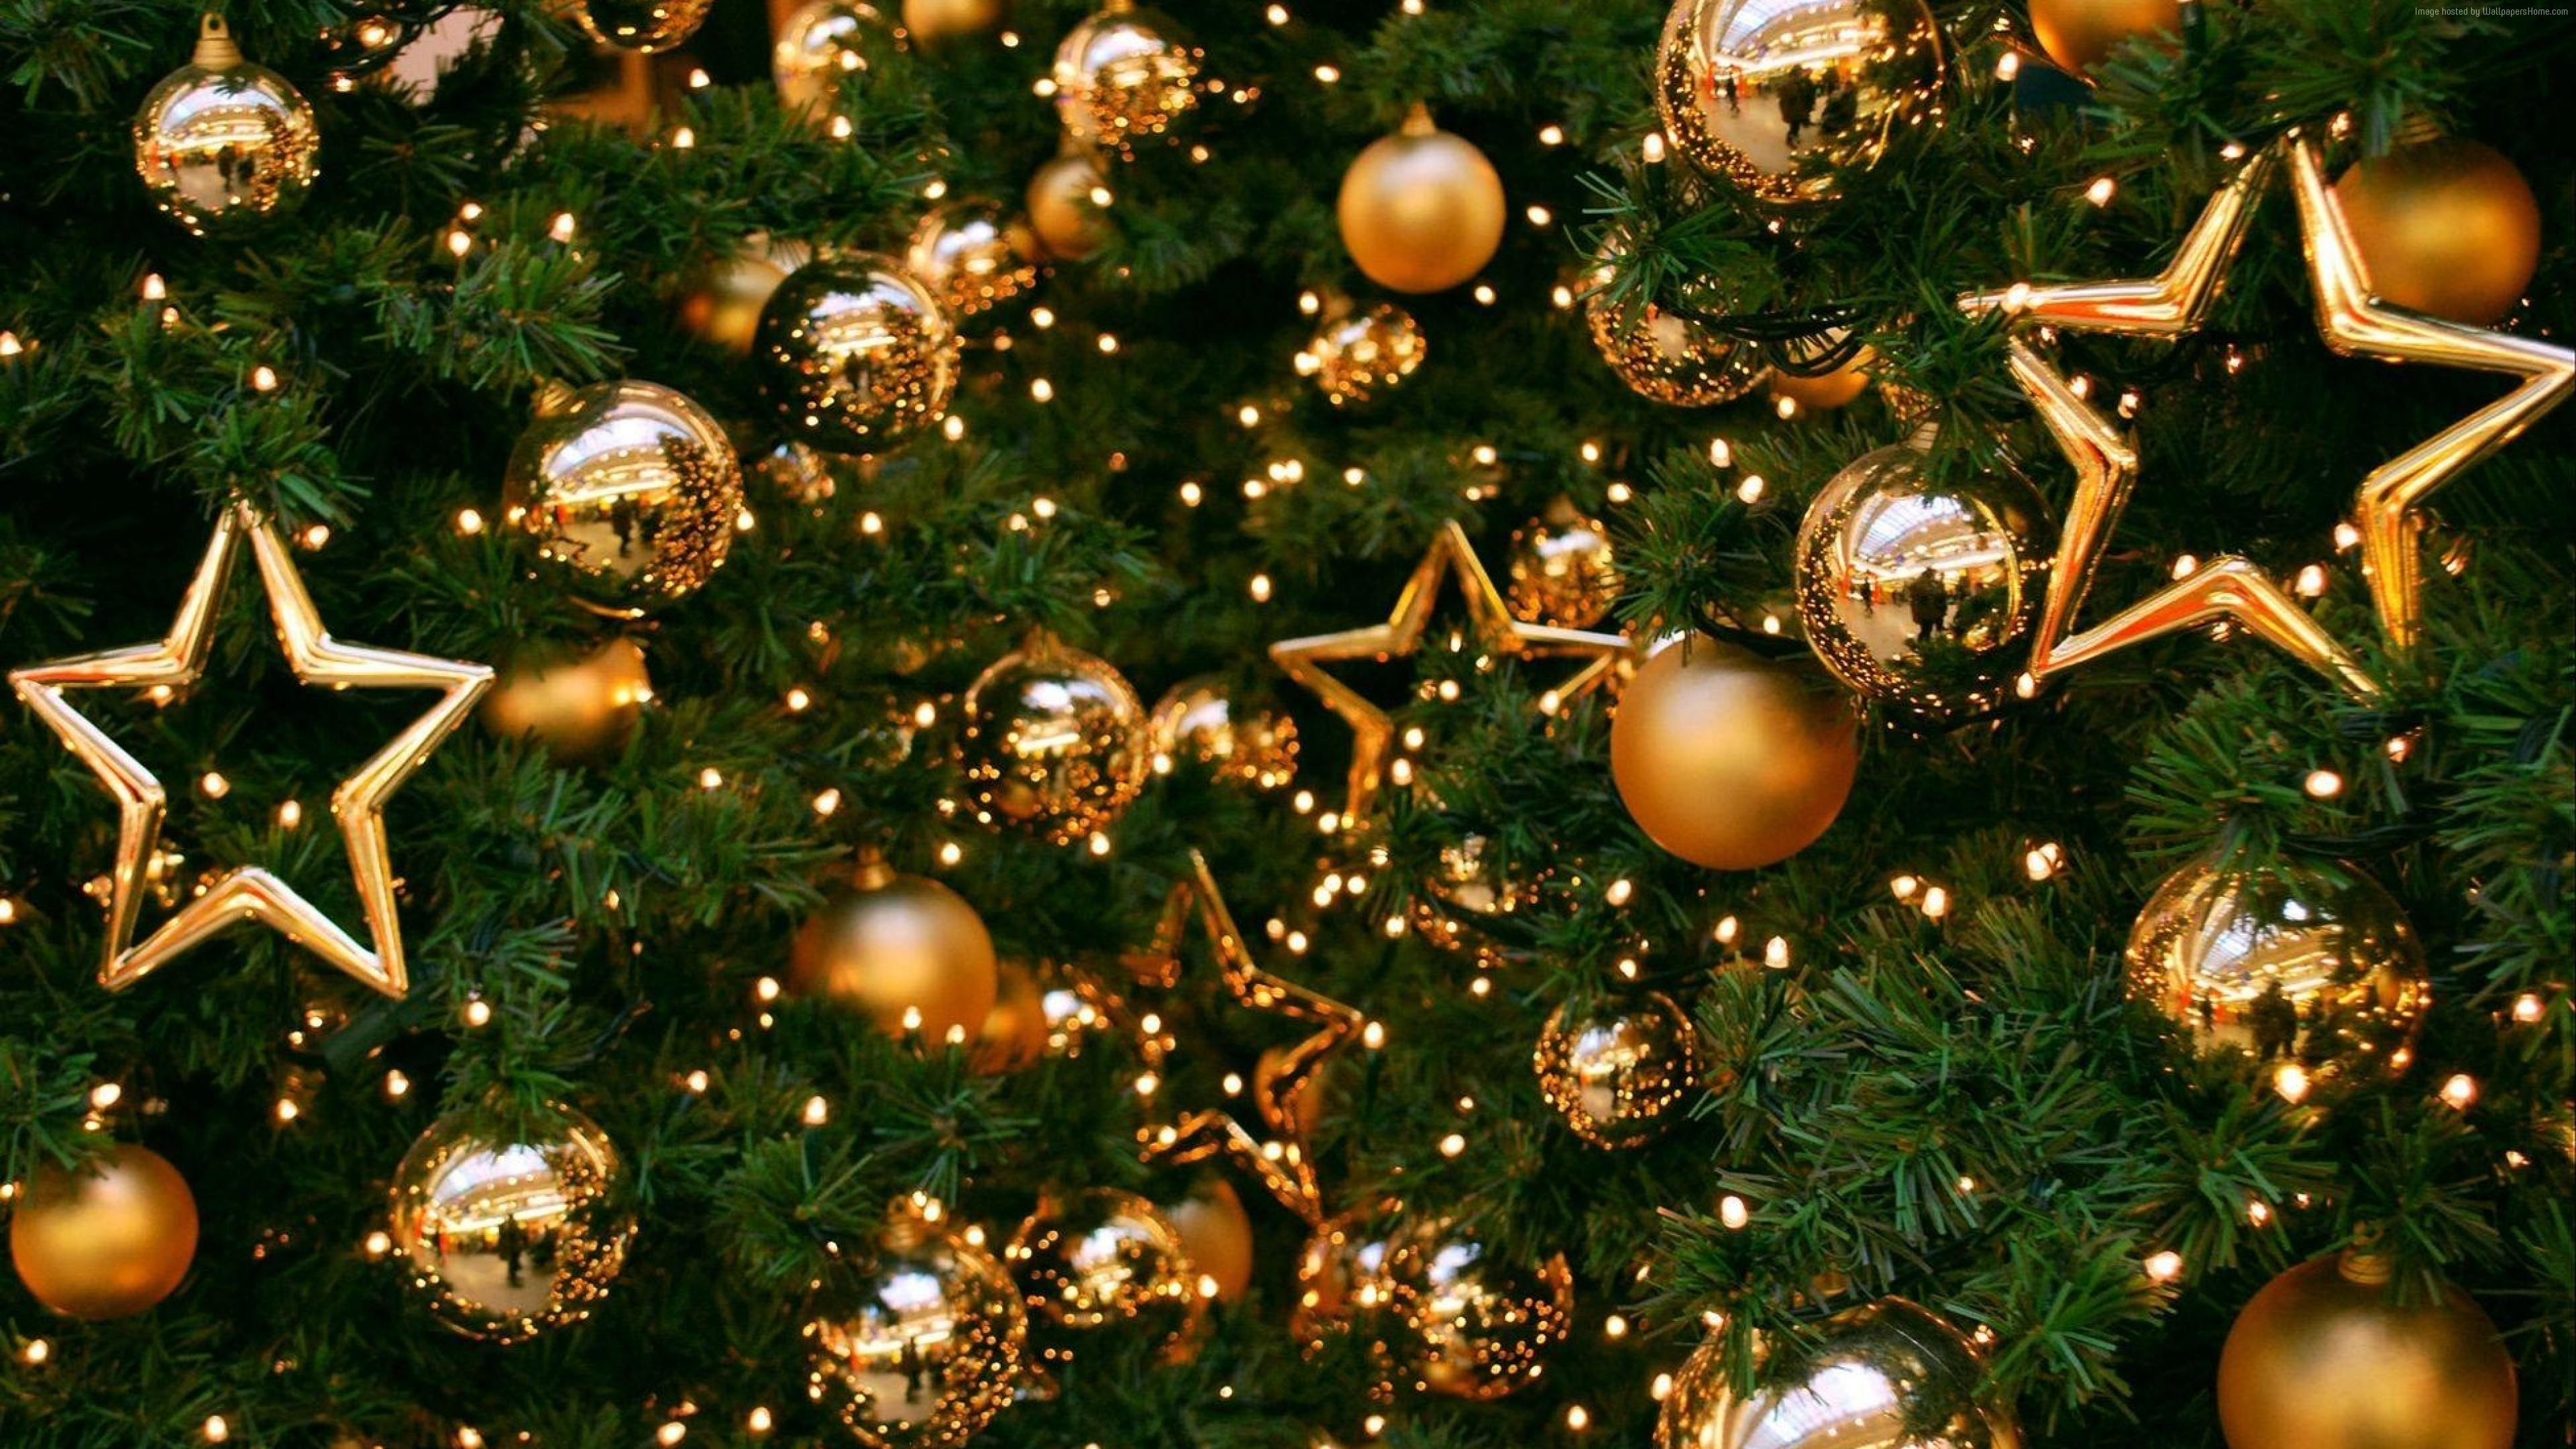 Wallpaper Christmas, New Year, toys, fir-tree, balls, decorations, 4k, Holidays